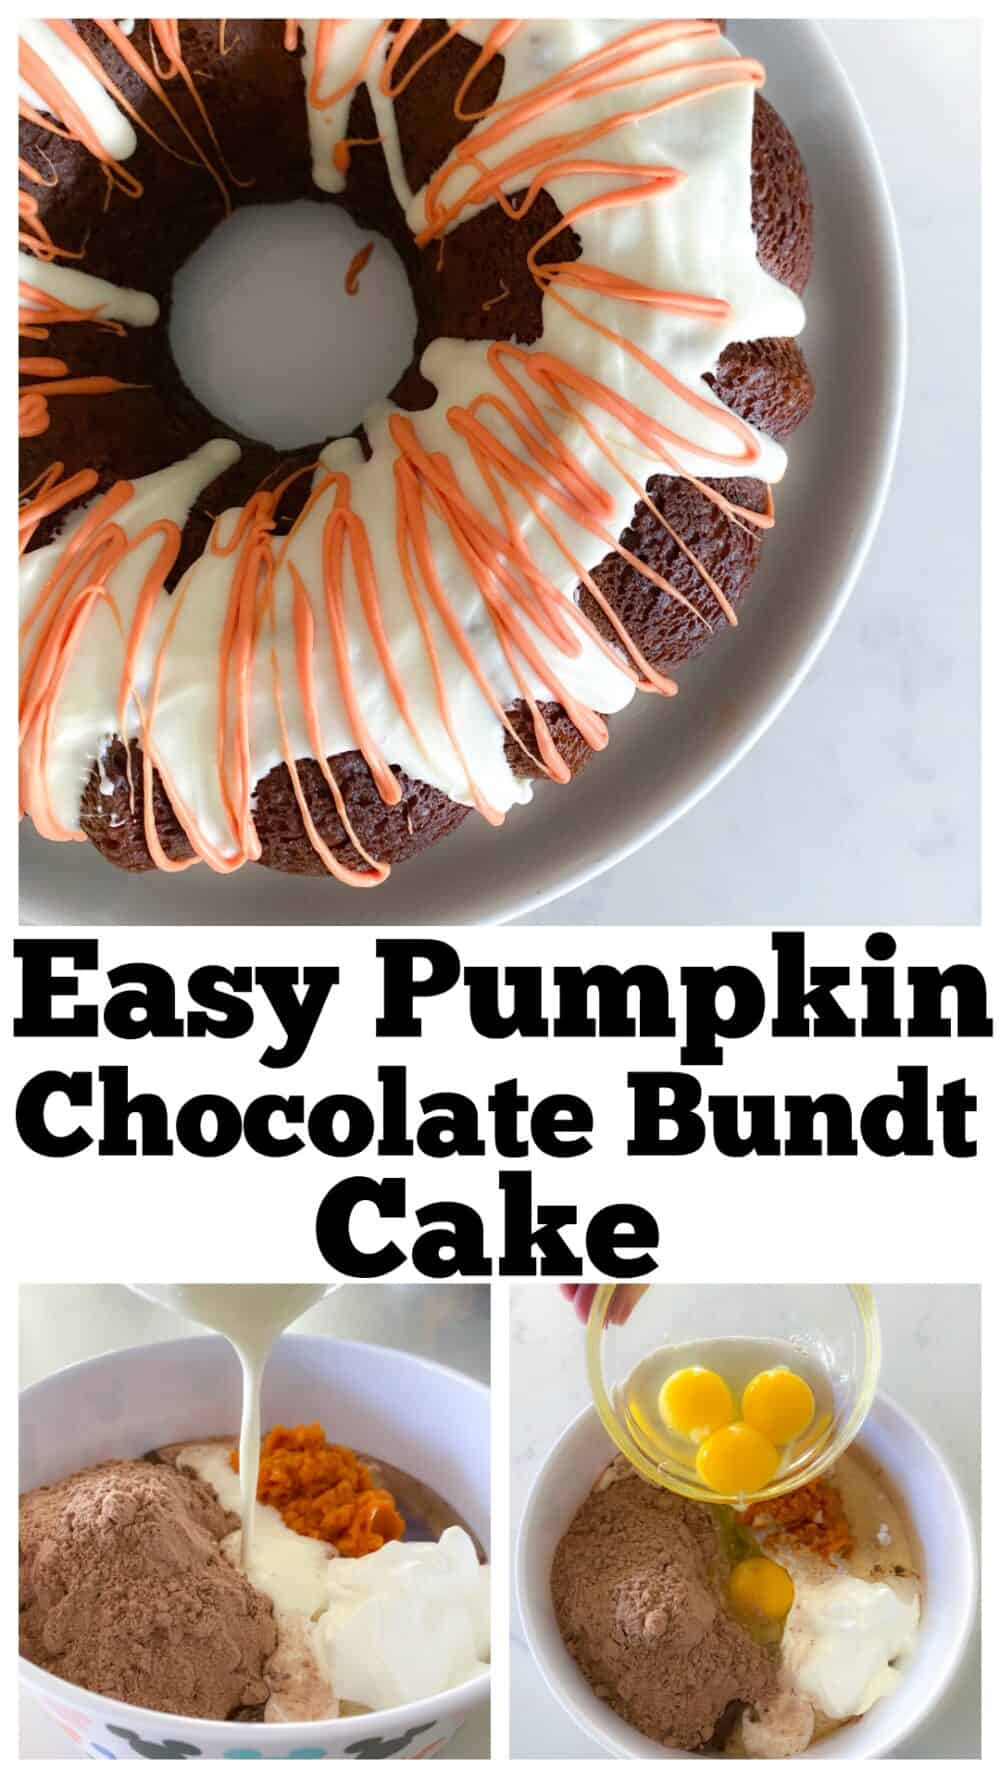 chocolate bundt cake photo collage